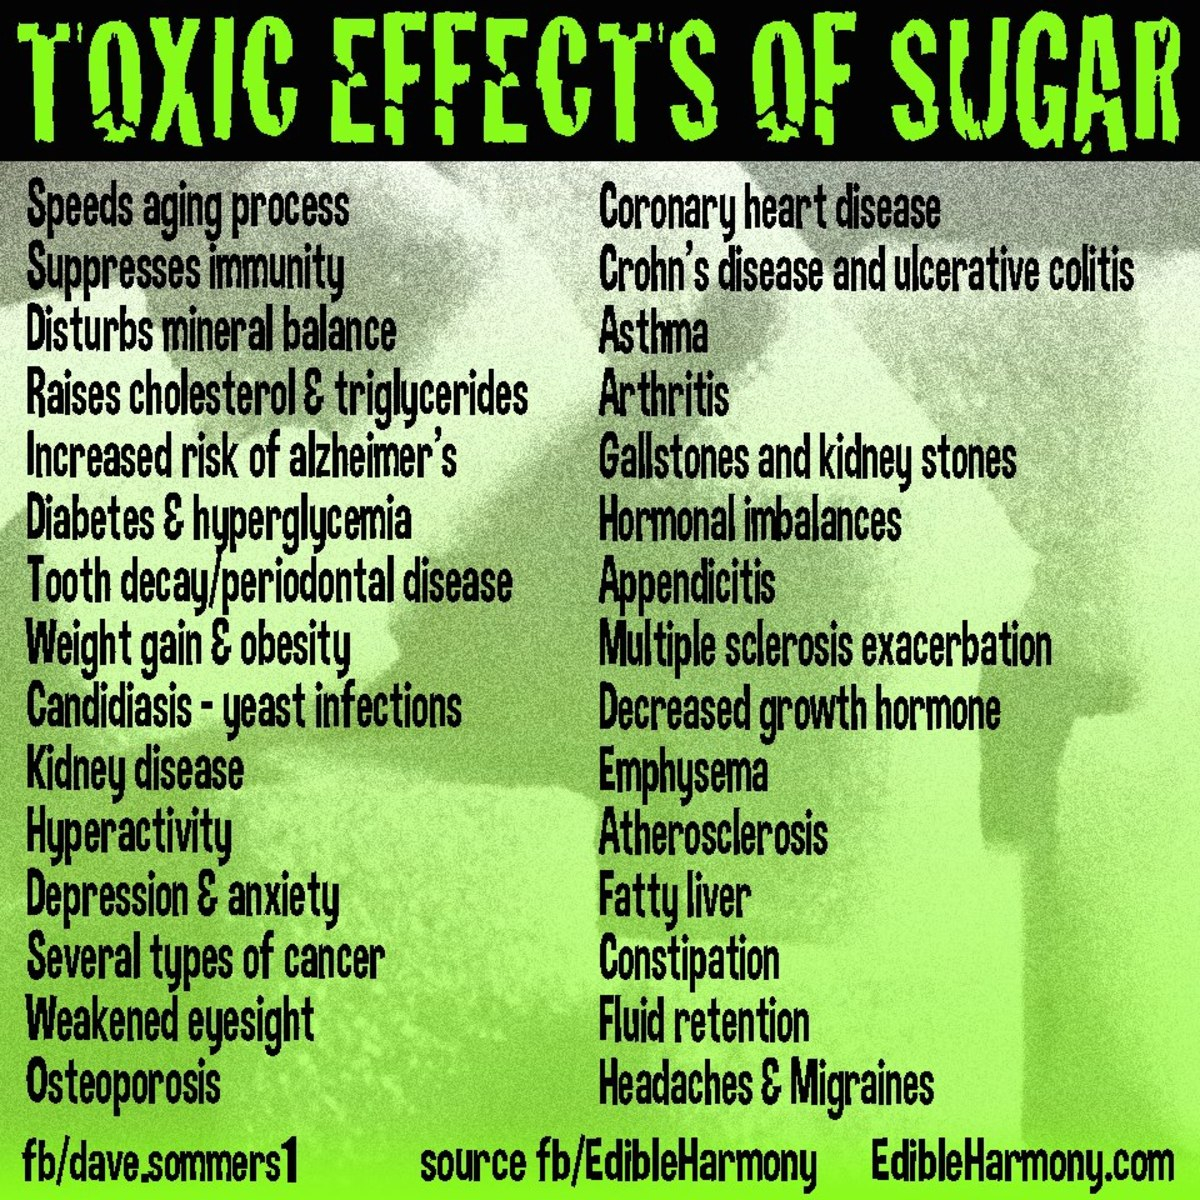 As this chart shows, there are so many toxic effects on the body as a result of a diet high in sugar. I try to avoid soft drinks and refined sugar when I can do so.